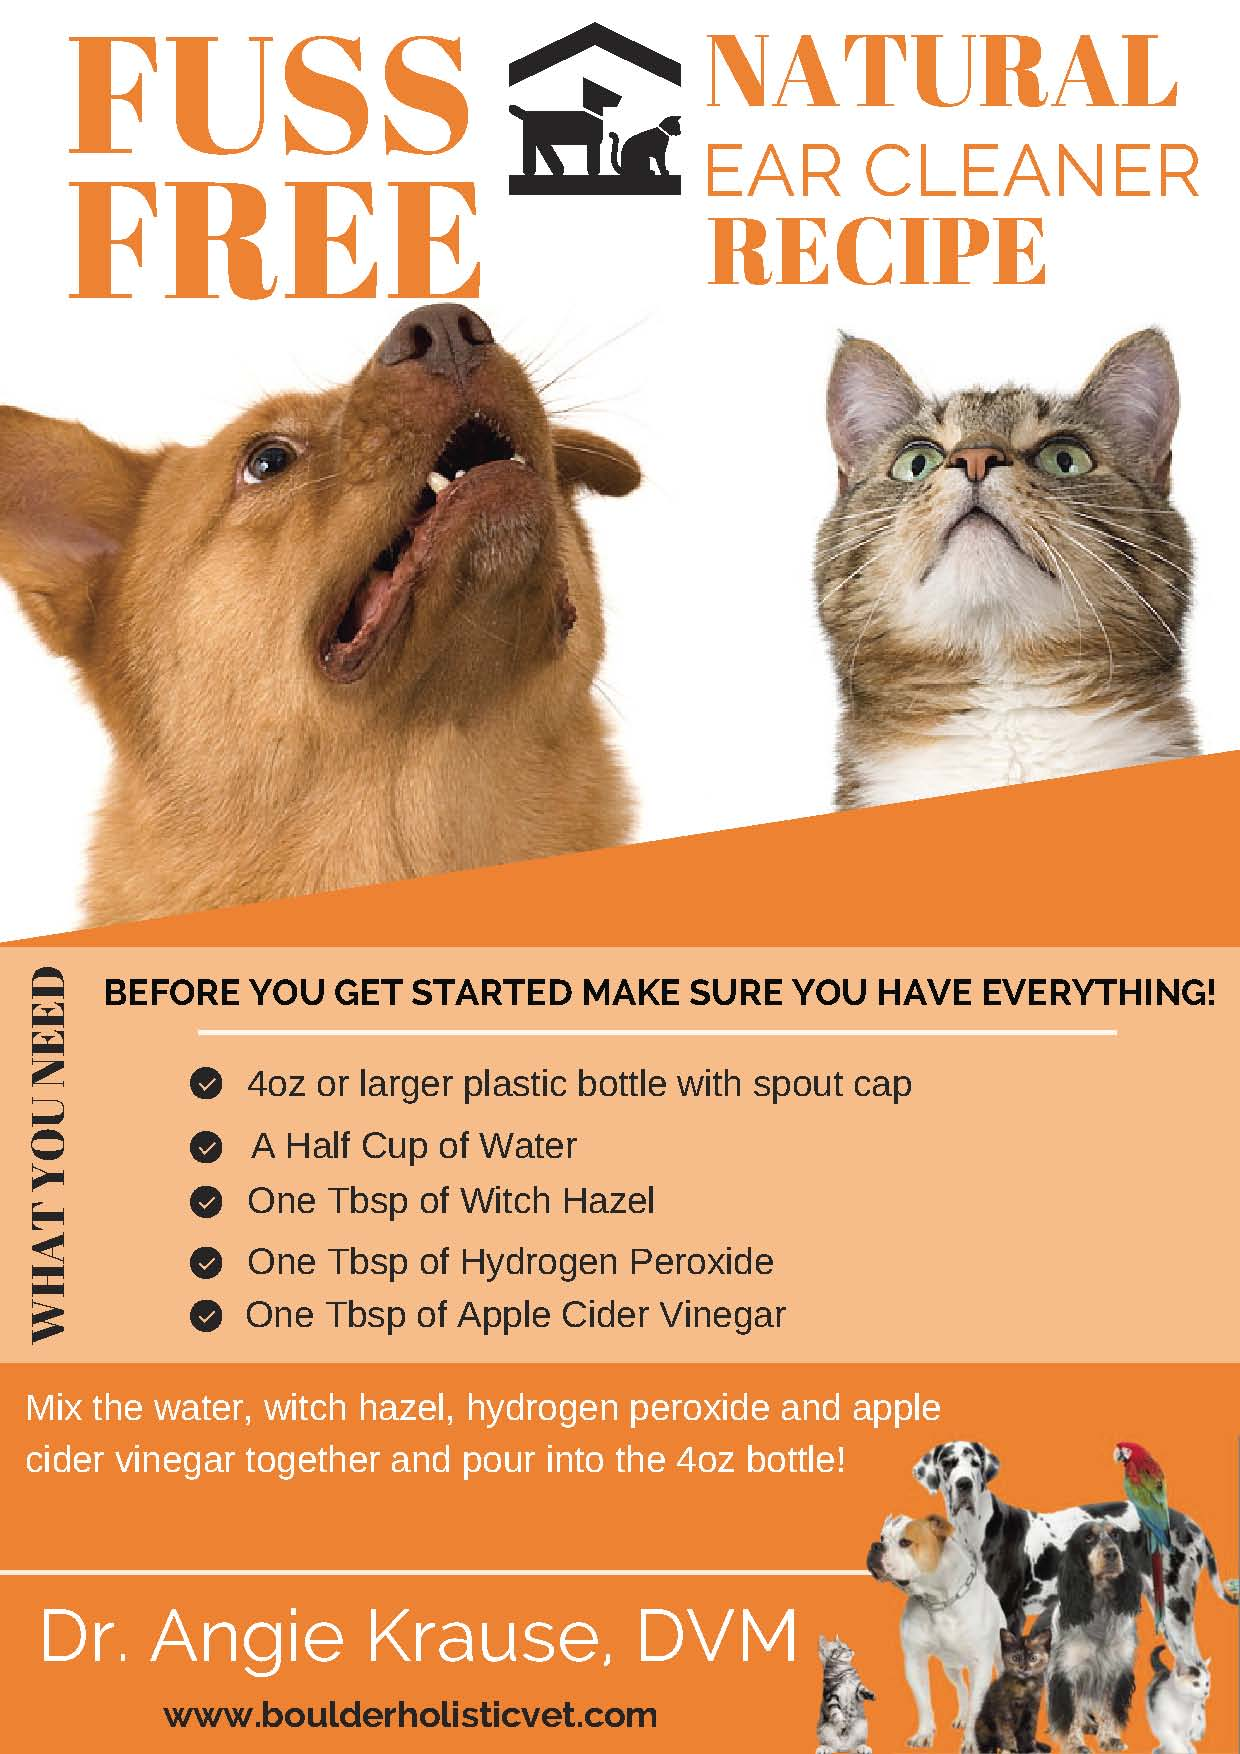 fuss free ear cleaning guide boulder holistic vet Page 1